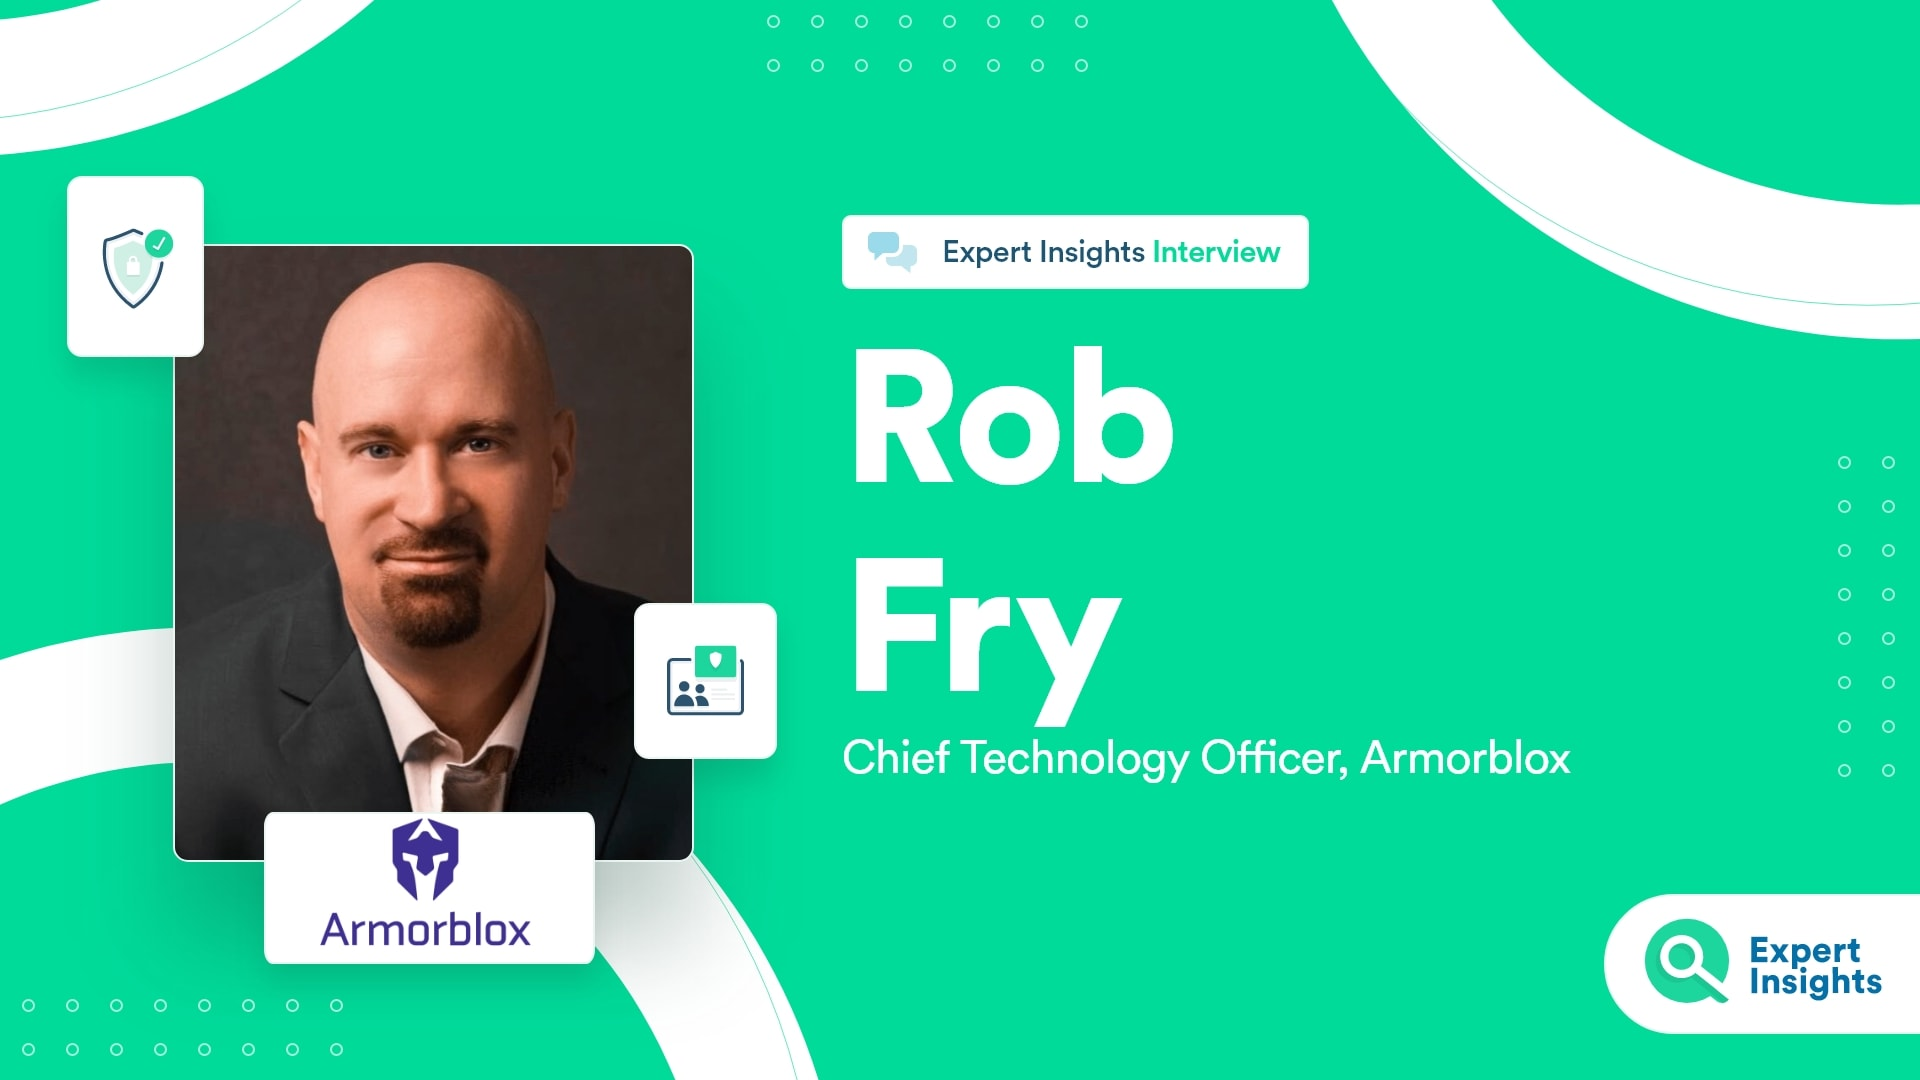 Interview With Rob Fry Of Armorblox - Expert Insights